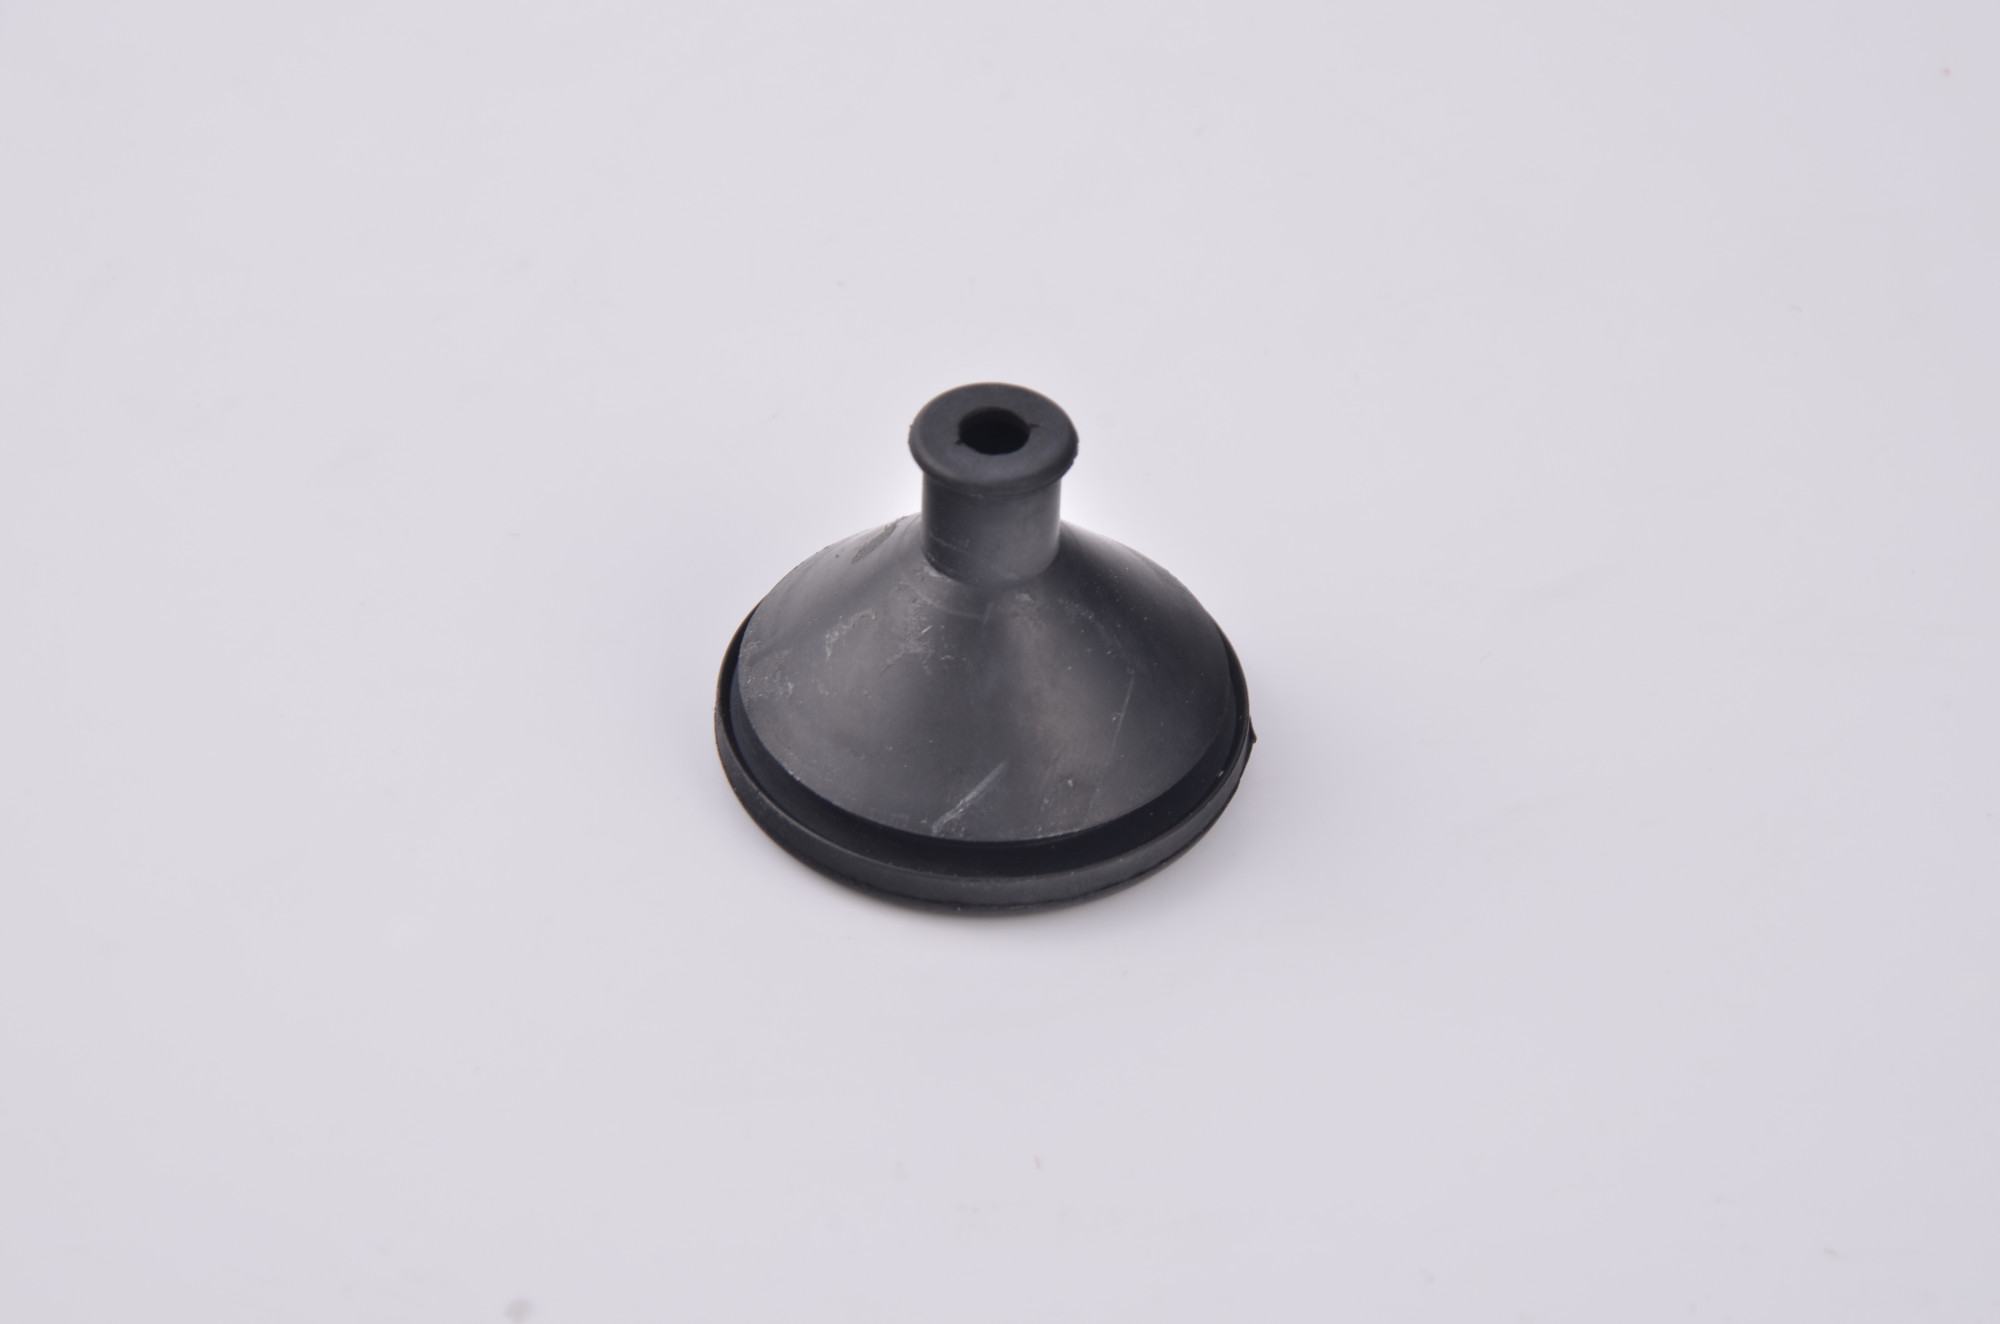 Harness rubber parts